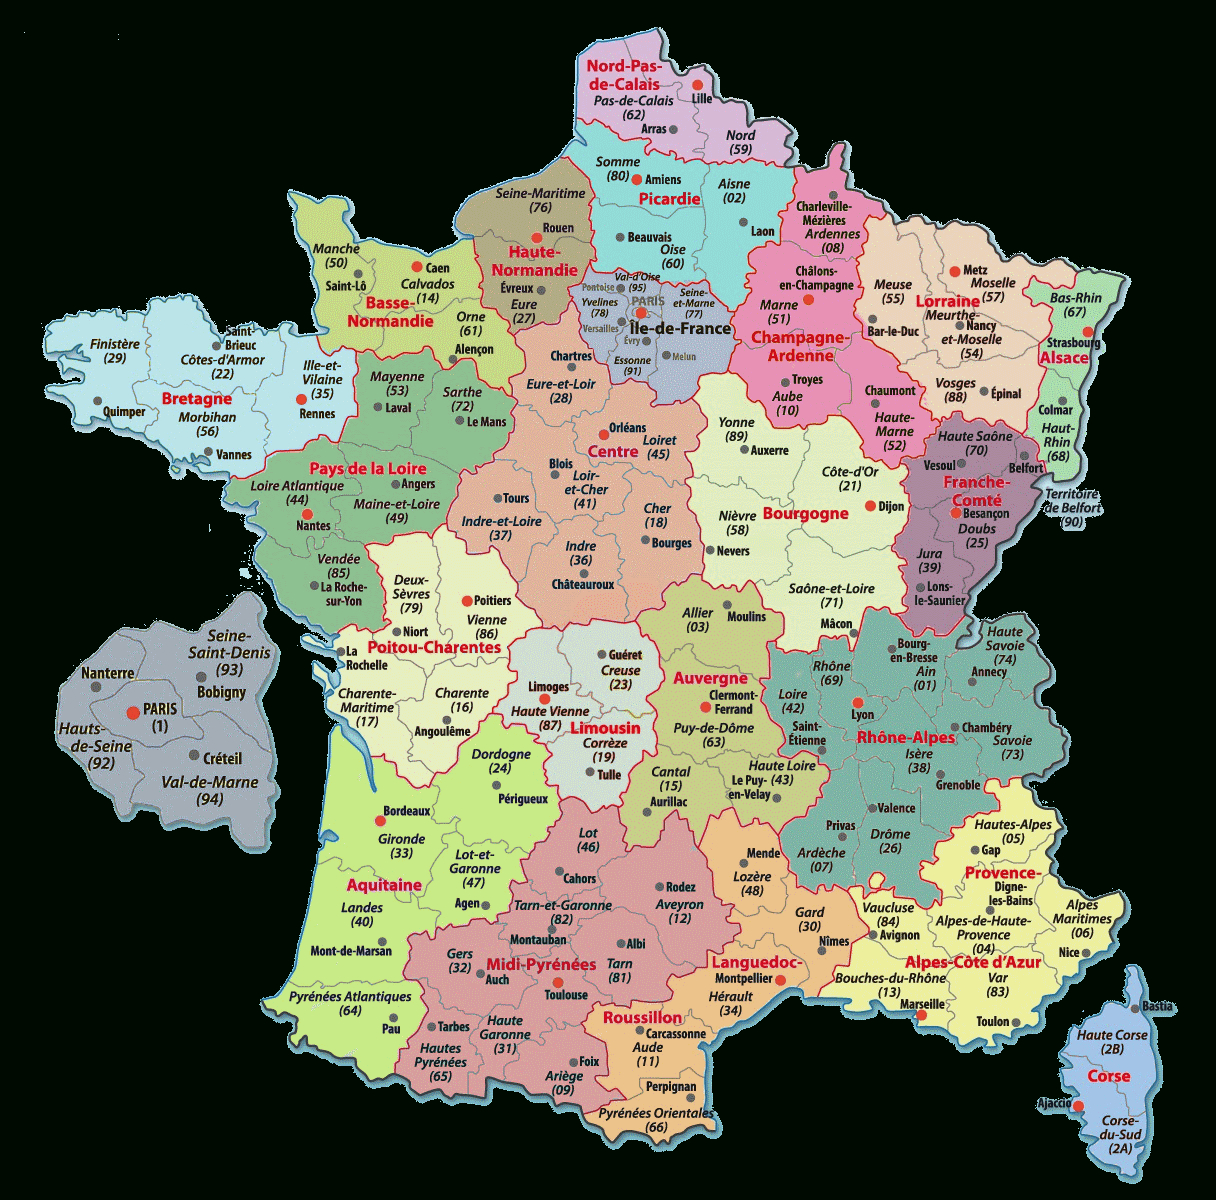 Carte De France Departements : Carte Des Départements De France destiné Carte De France Par Régions Et Départements